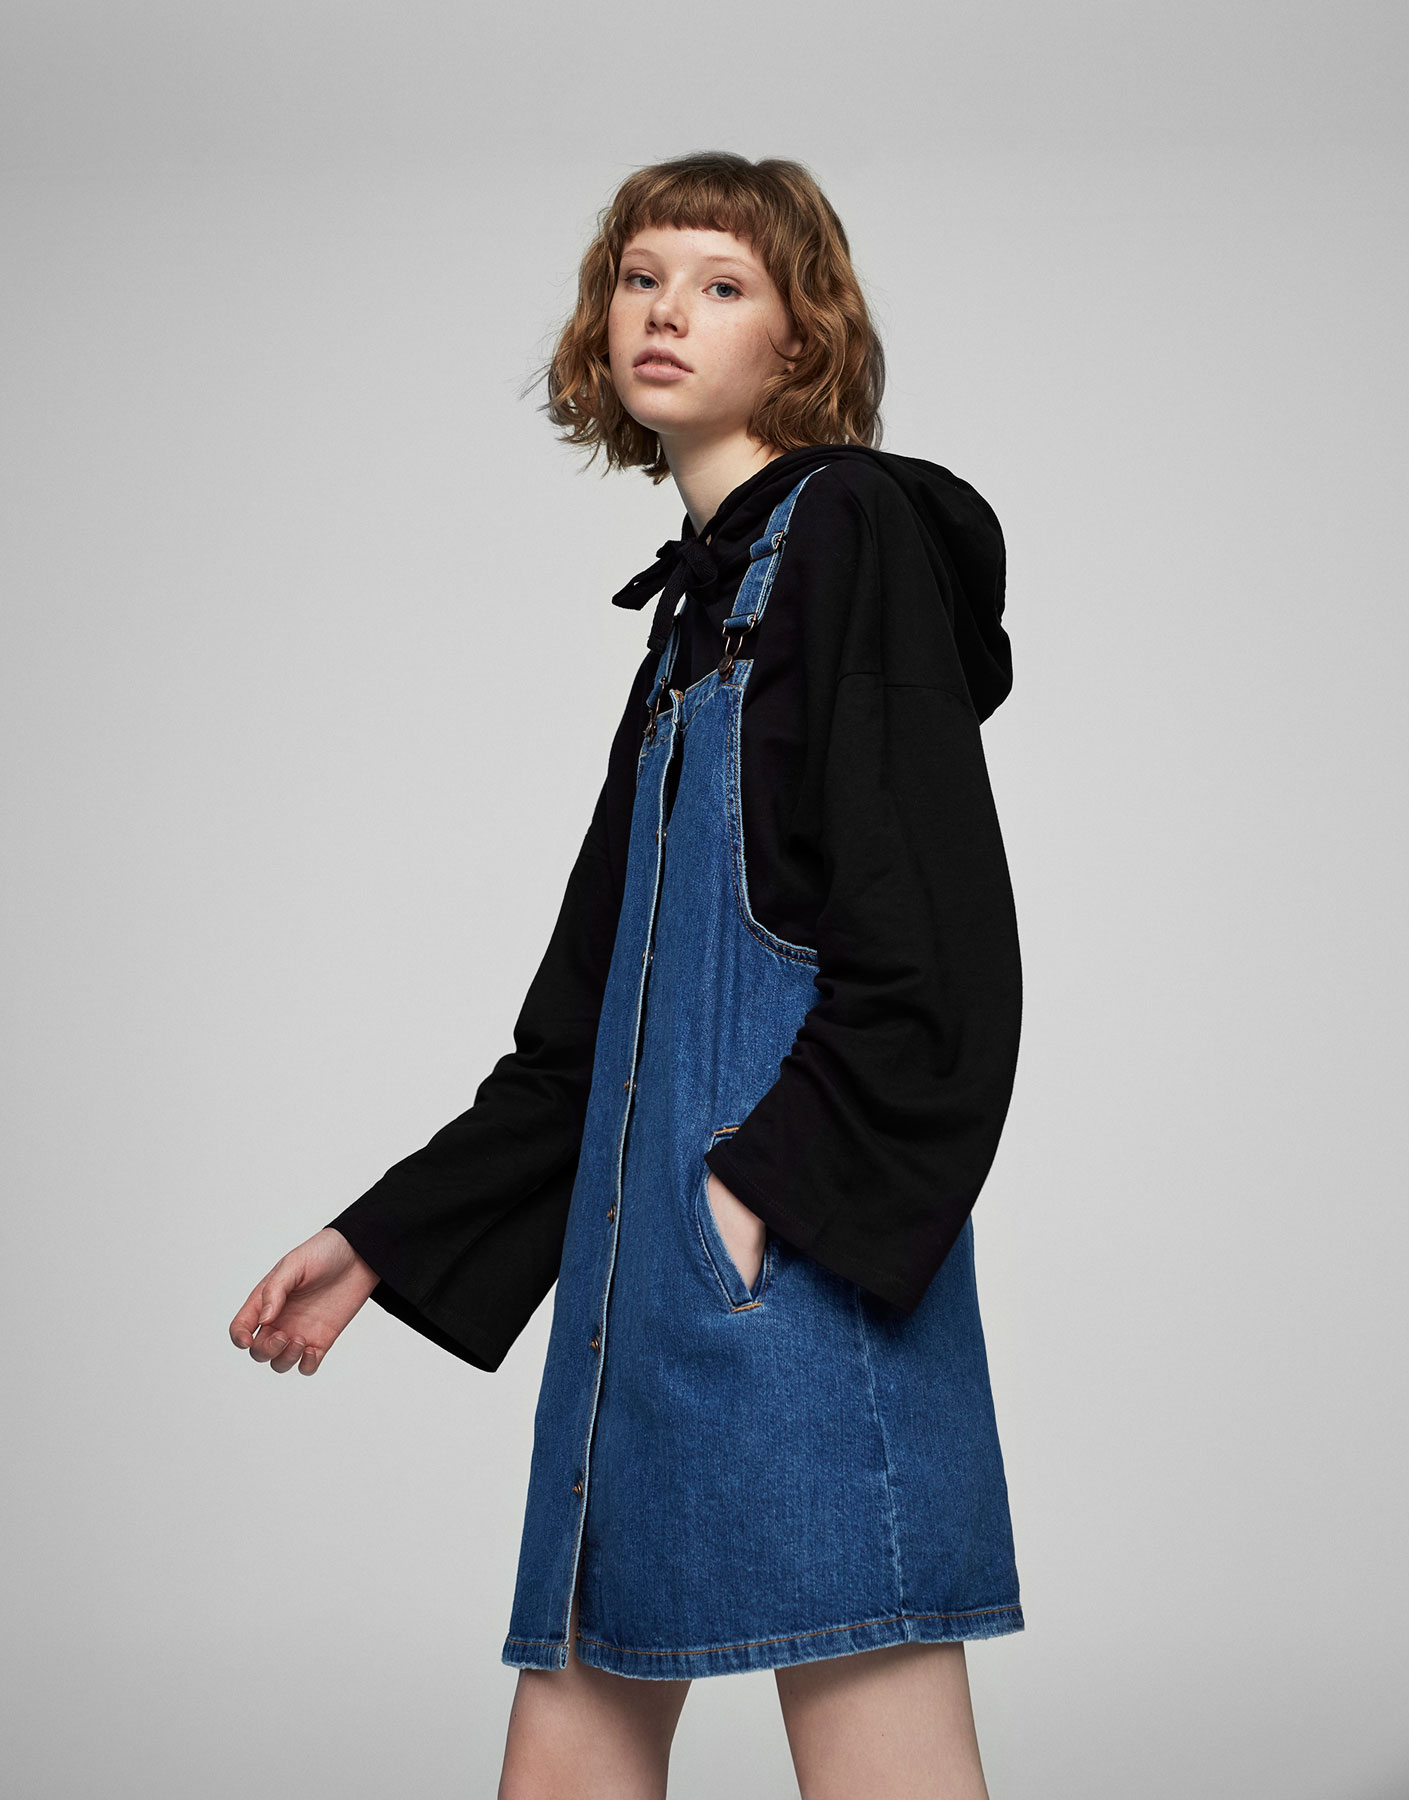 Dungaree-style denim dress